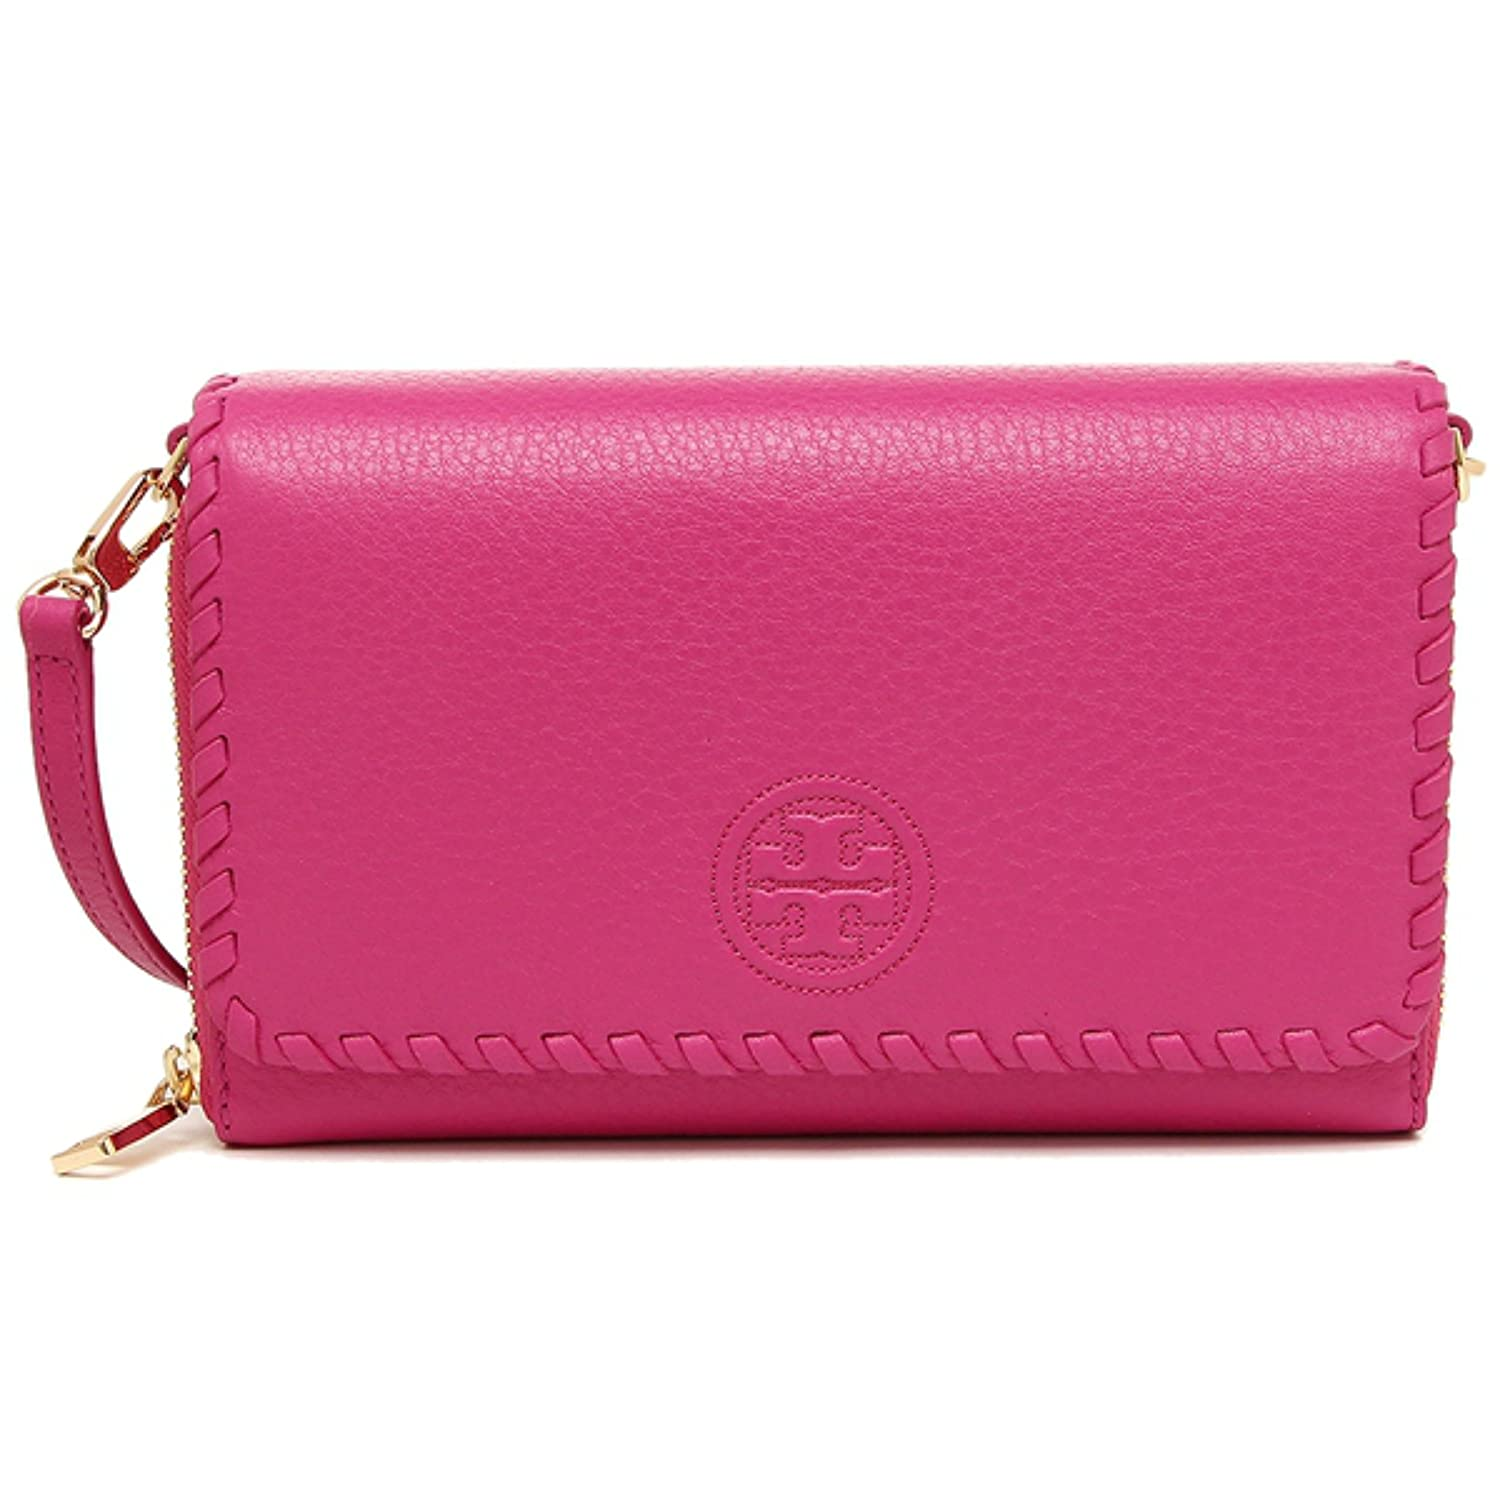 520ed075852 Amazon.com: Tory Burch MARION Leather Flat Wallet Crossbody Bag HIBISCUS  FLOWER: Shoes